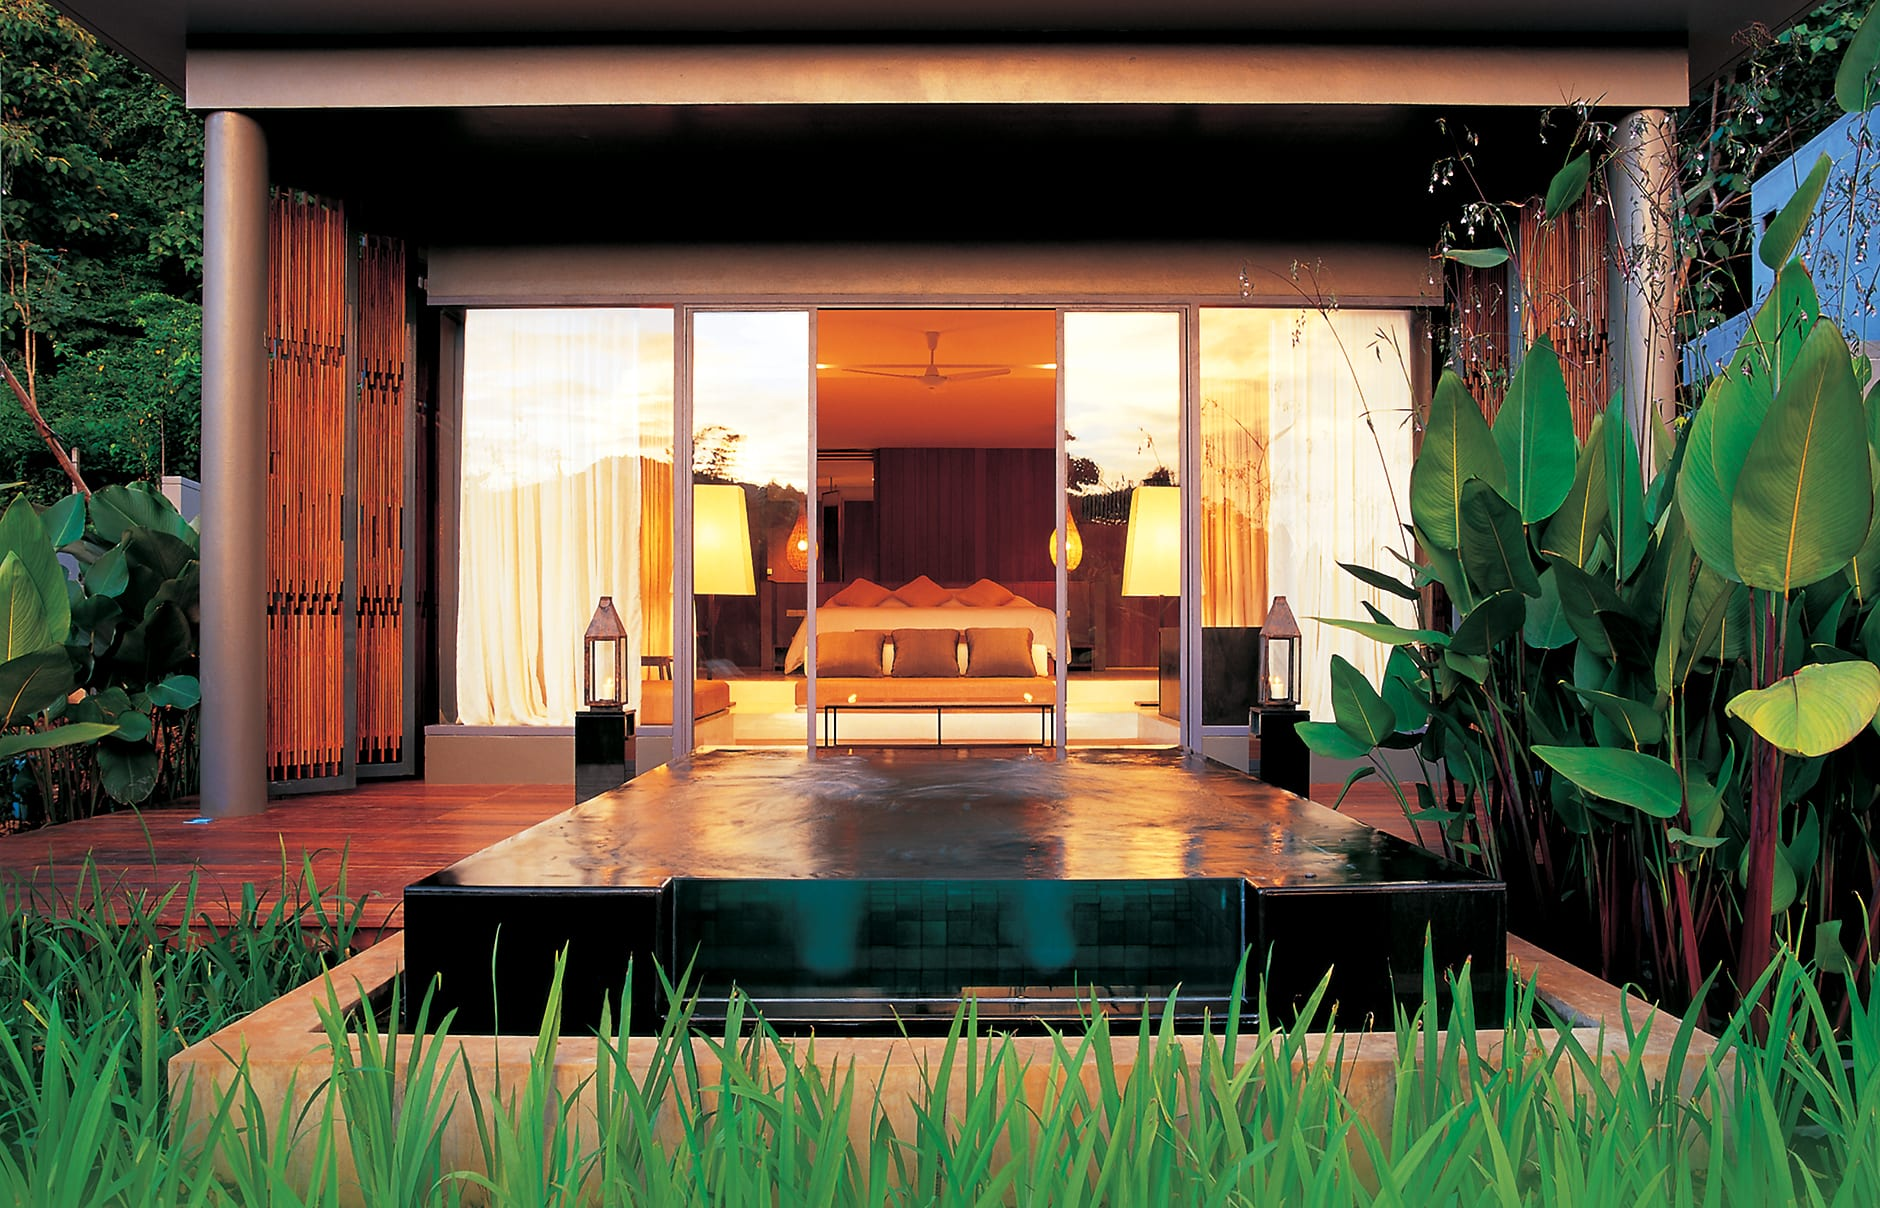 Plunge Pool Pavilion. Veranda High Resort Chiang Mai, Thailand. Hotel Review by TravelPlusStyle. Photo © AccorHotels